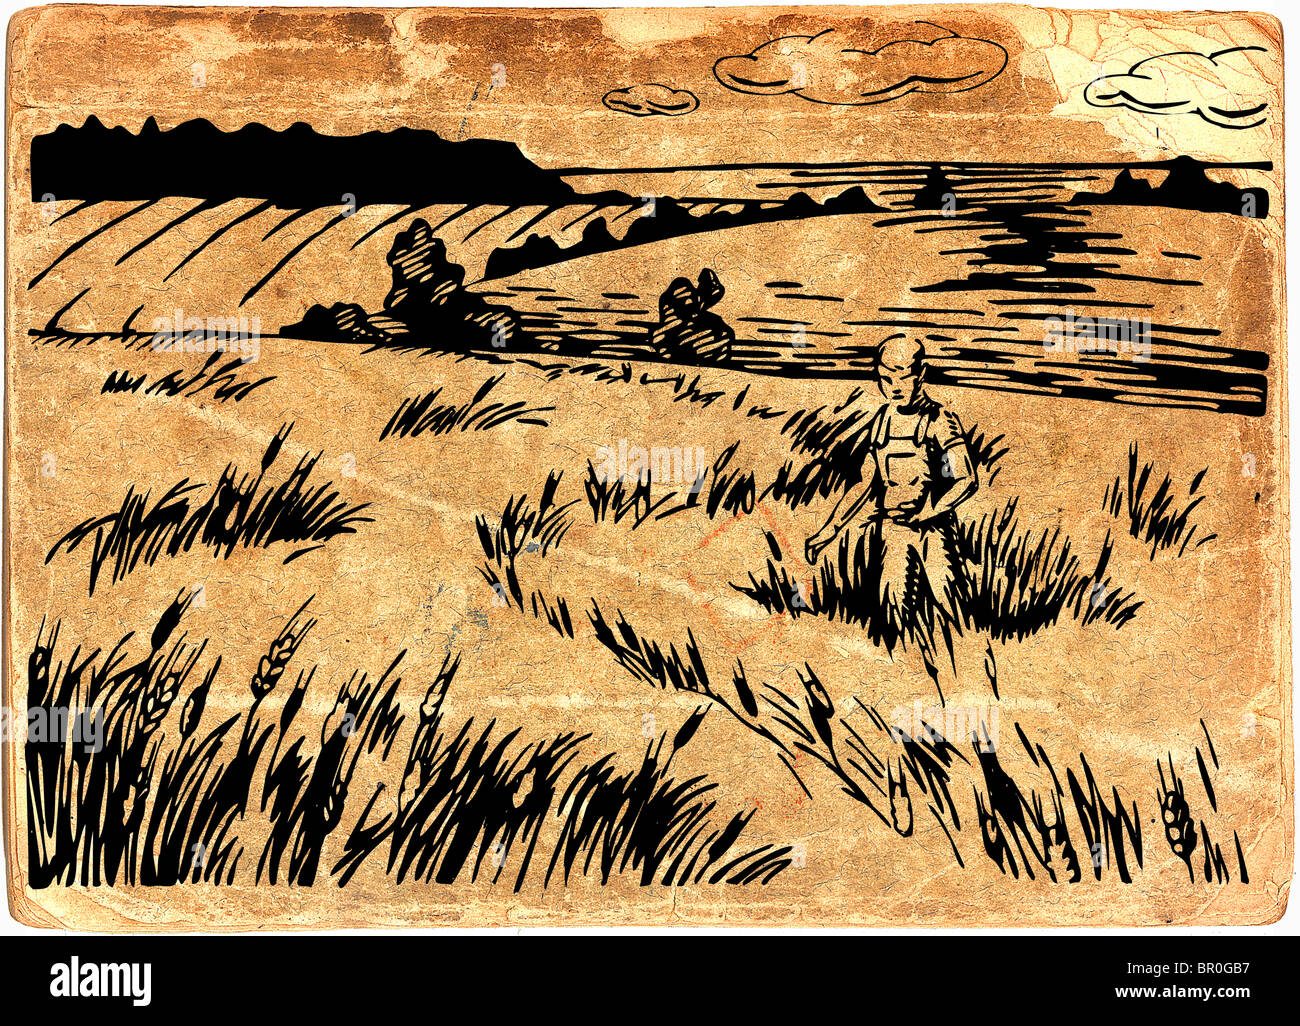 Farmer inspecting his crops, on vintage paper background - Stock Image